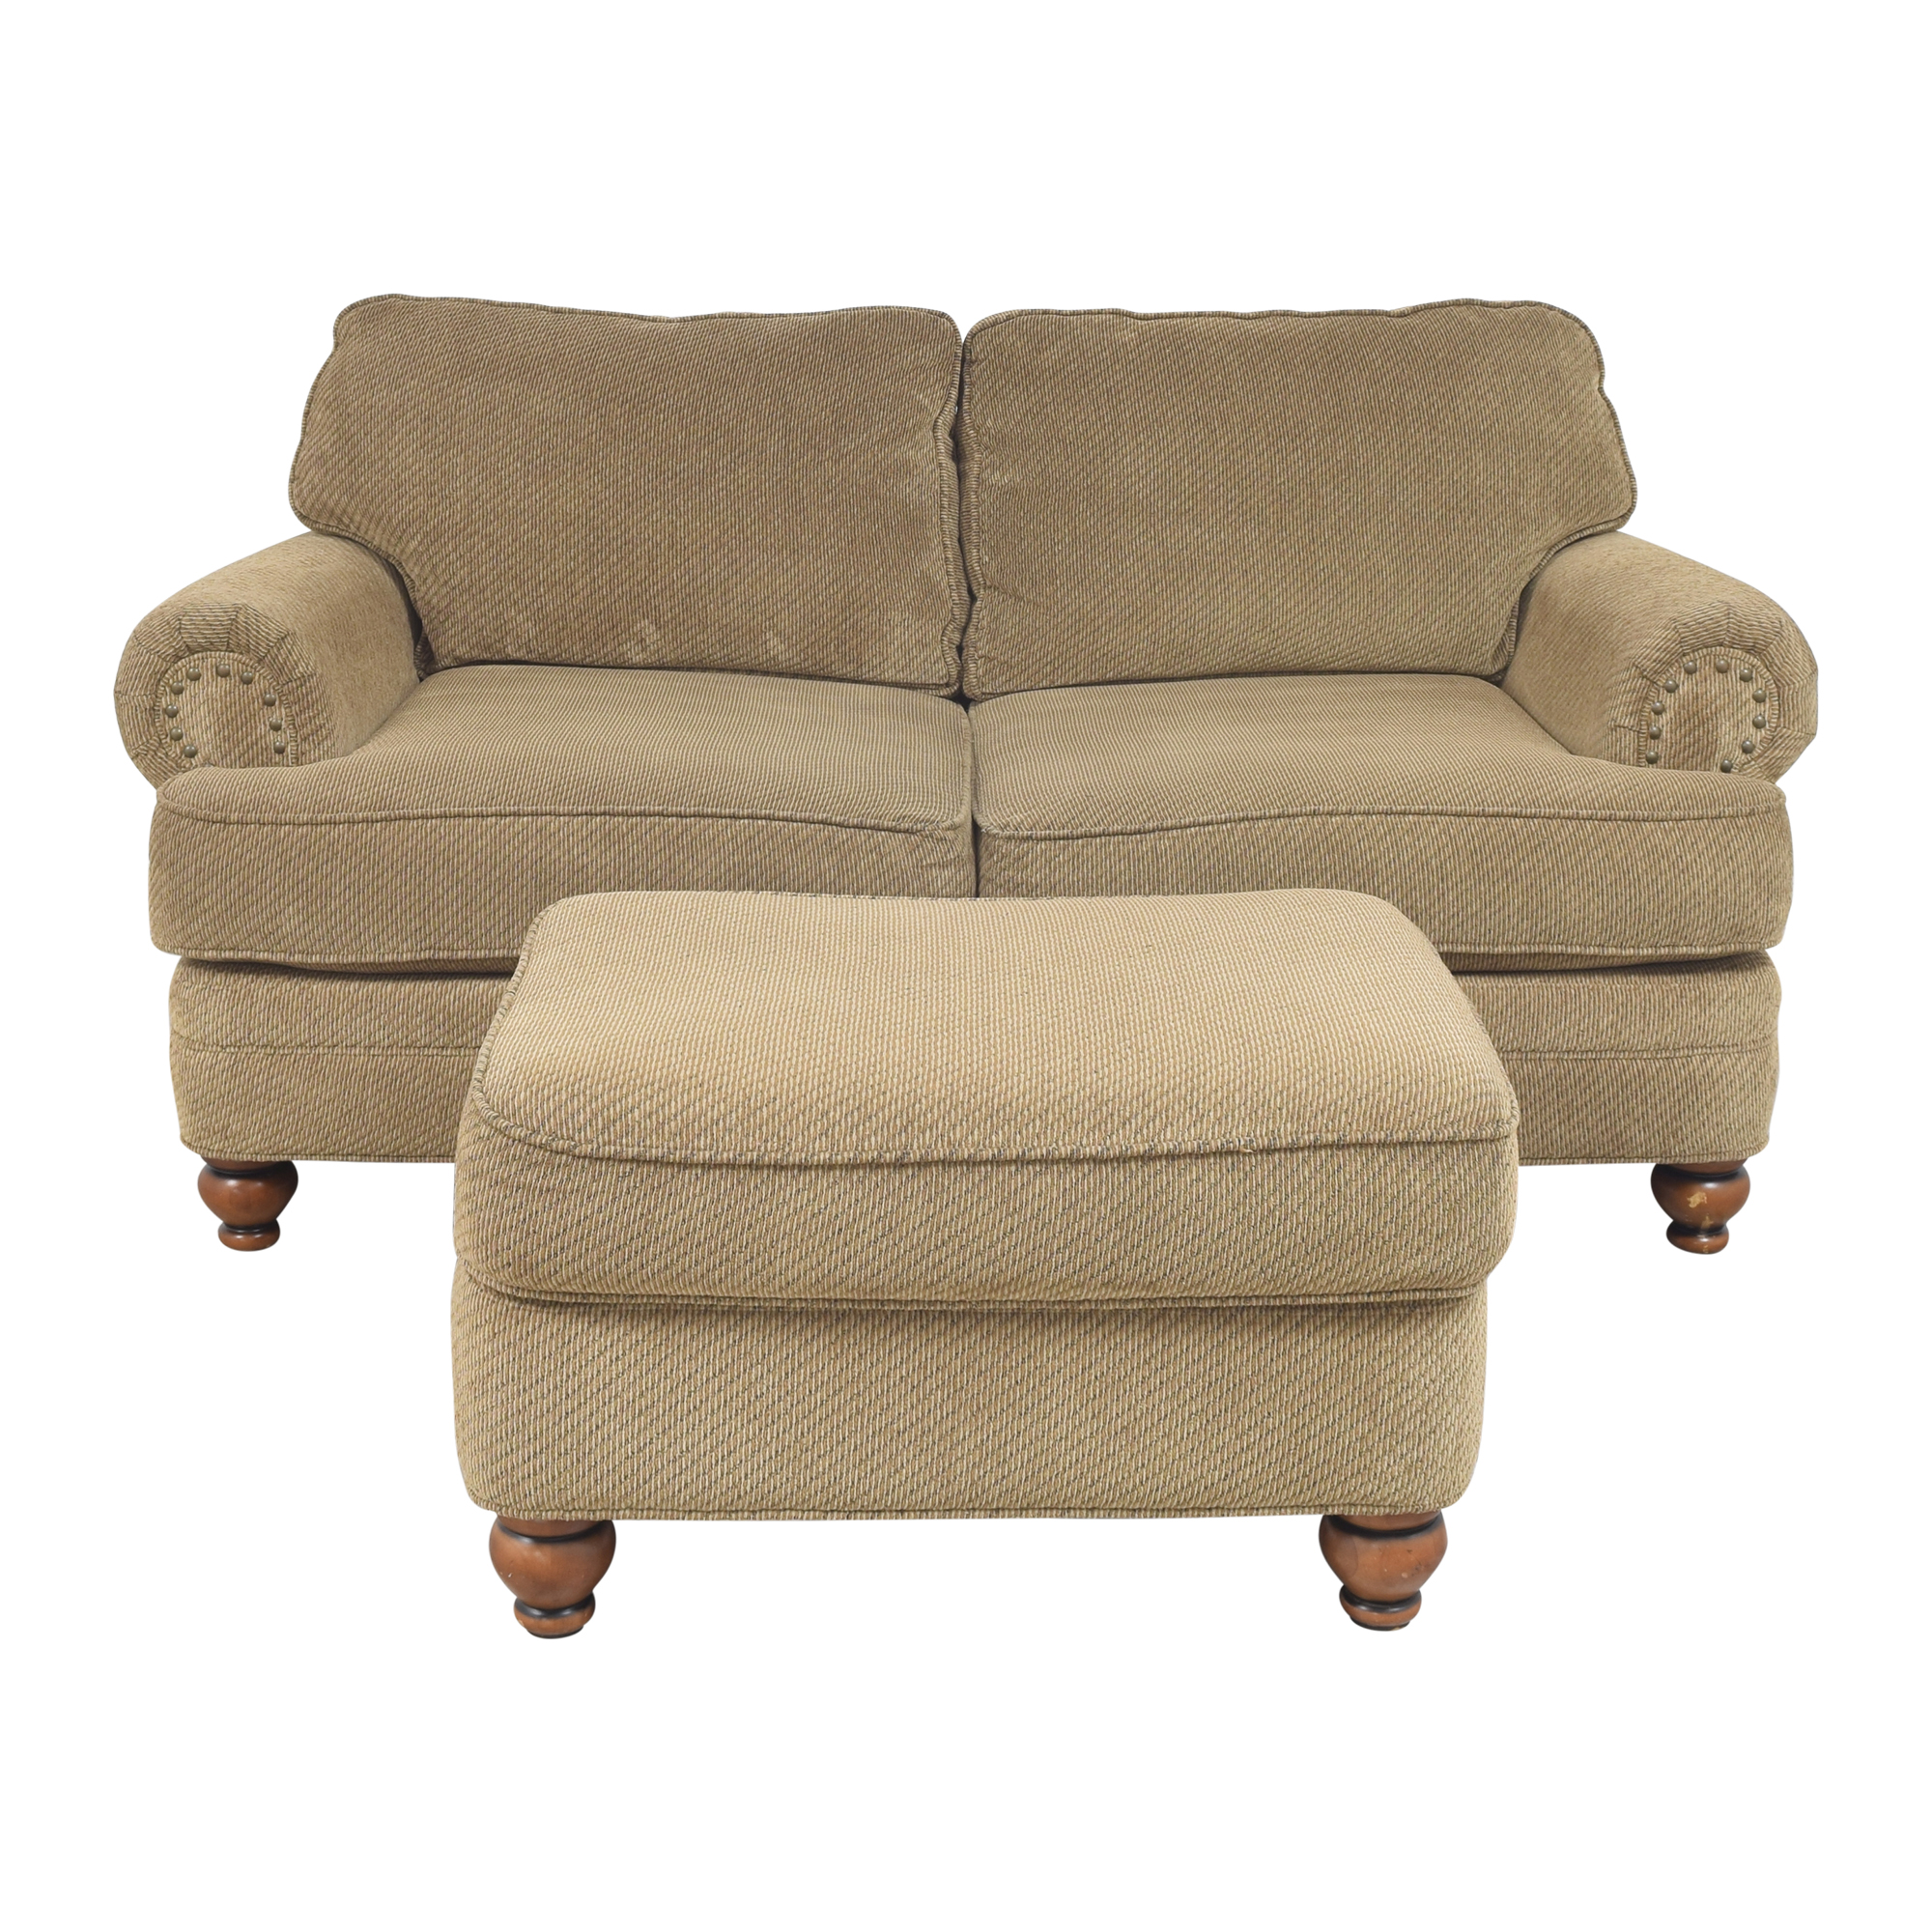 Raymour & Flanigan Dorian Loveseat with Ottoman sale